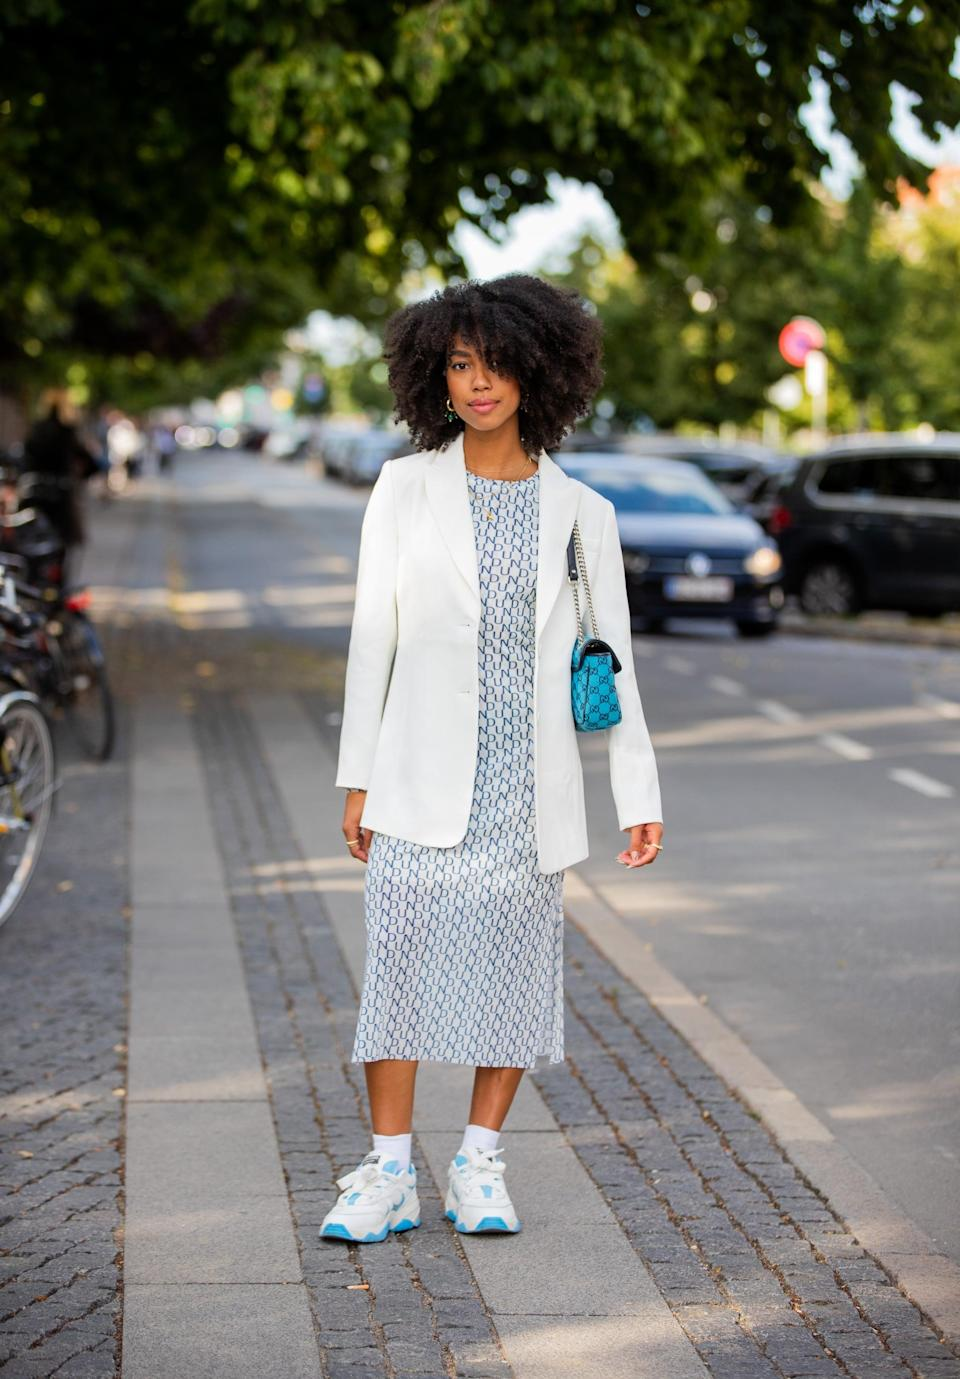 <p>We're obsessed with the new iteration of retro sneakers we've been seeing on the runways. The '70s are making a comeback with brands like Loewe and Re/Done showing us how it's done.</p>